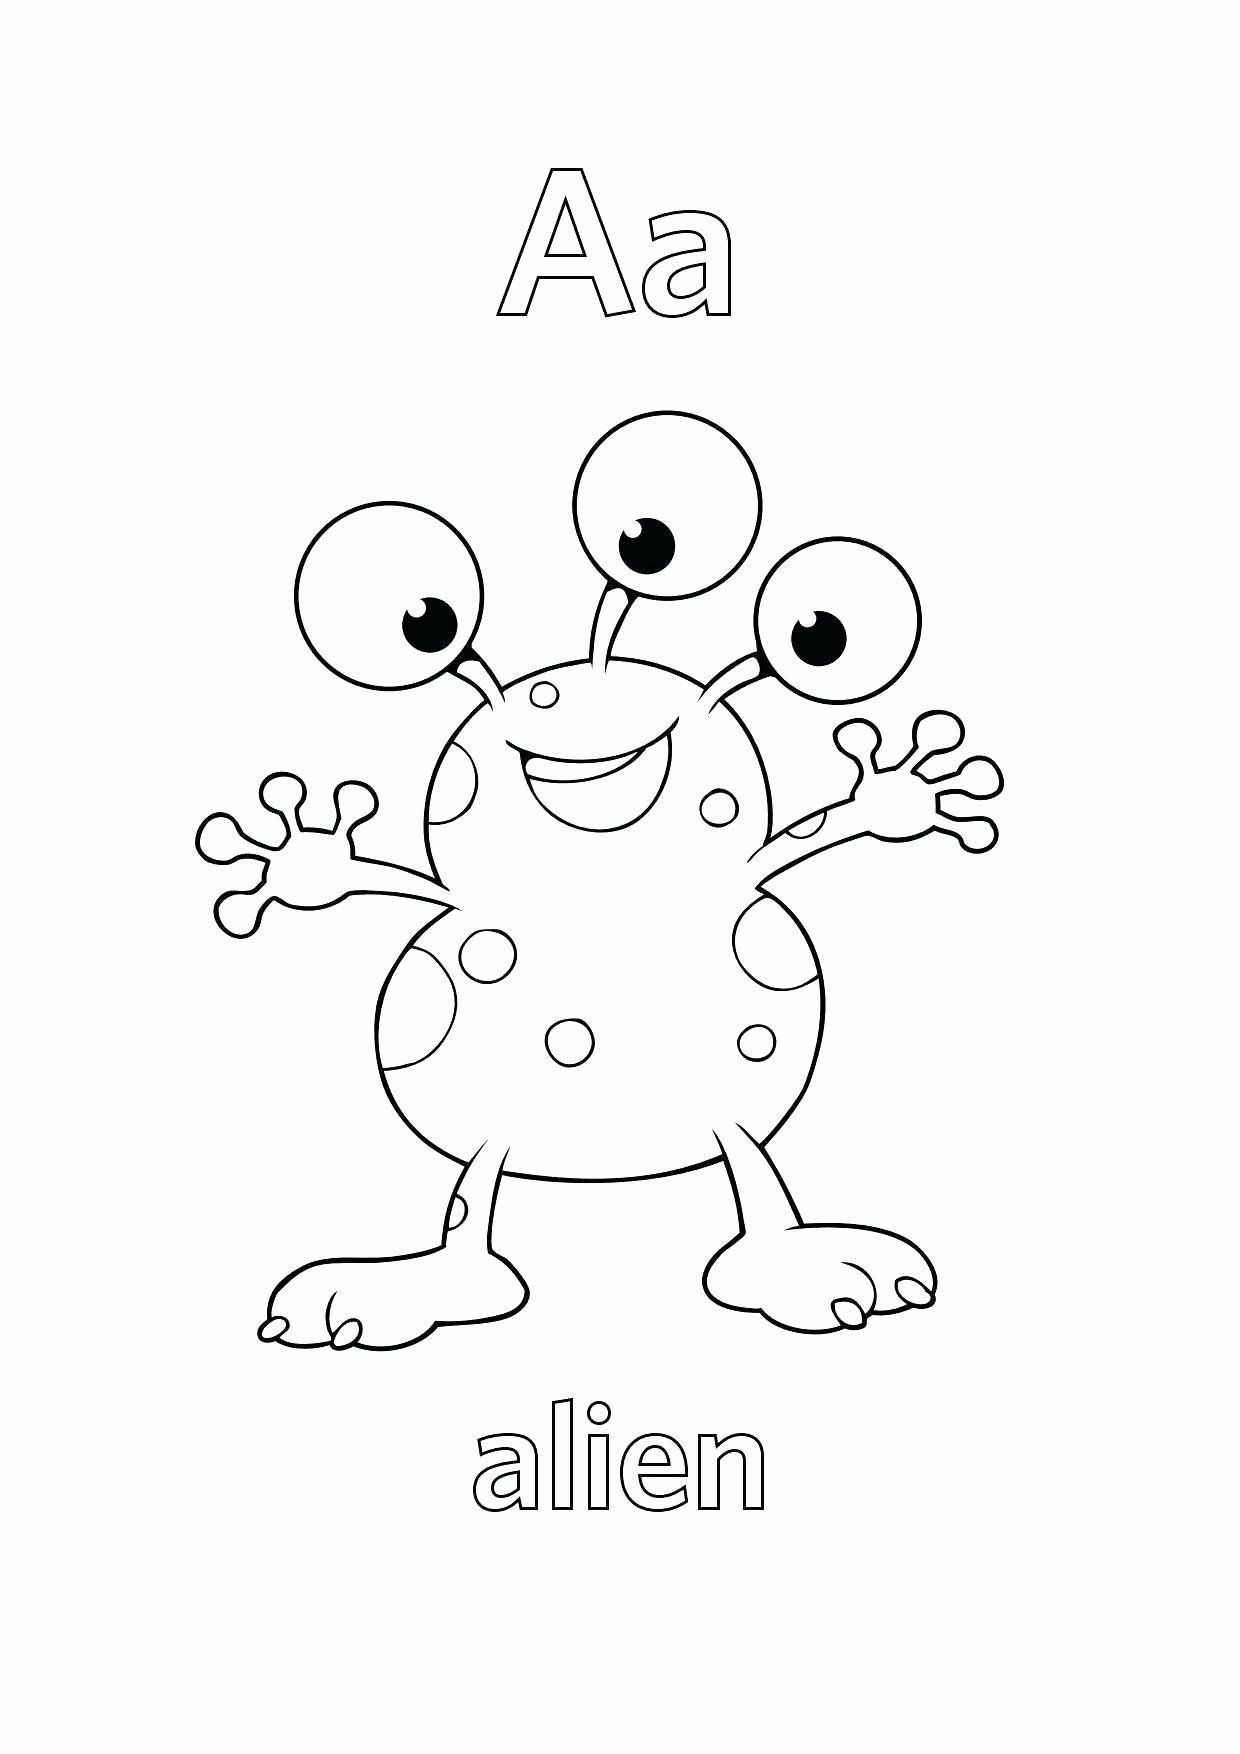 Letter Aa Coloring Pages Unique Coloring Pages Coloring